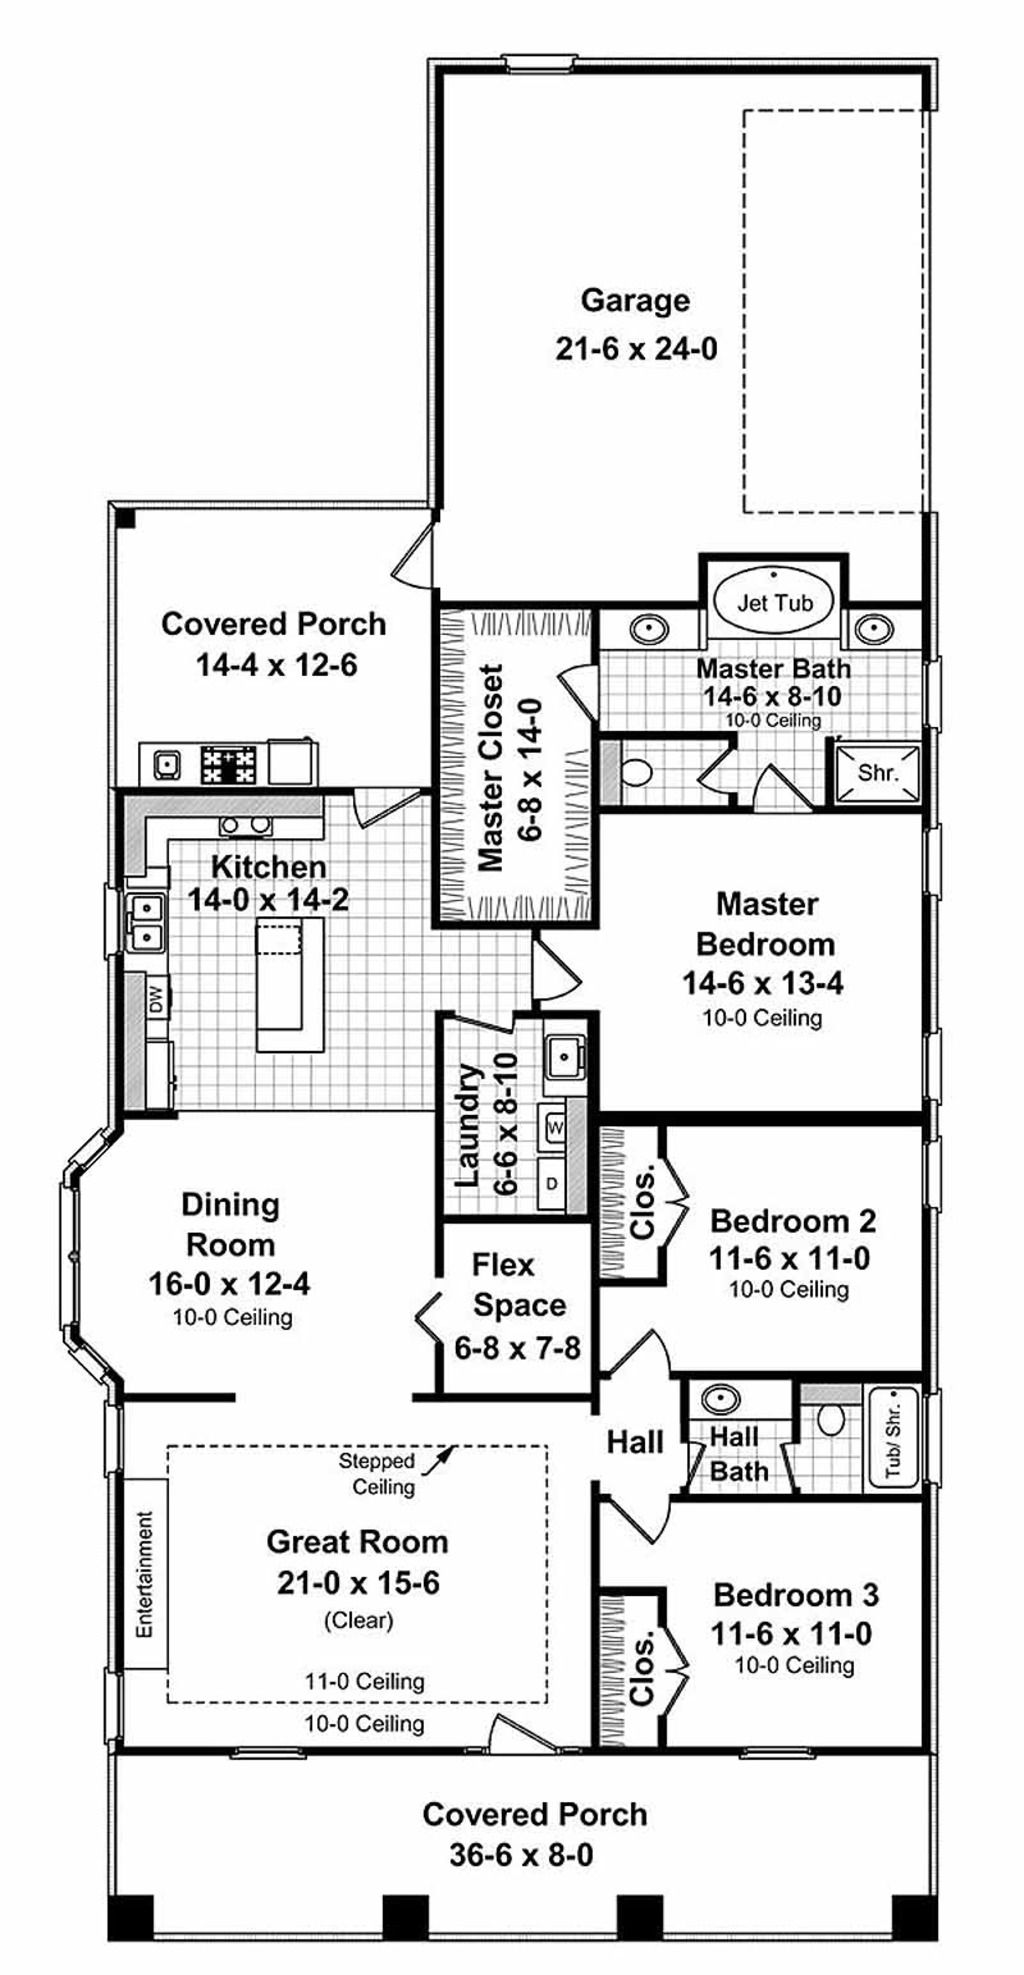 Craftsman Style House Plan 3 Beds 2 Baths 1800 Sq Ft Plan 21 249 Narrow Lot House Plans House Plan Gallery Craftsman Style House Plans